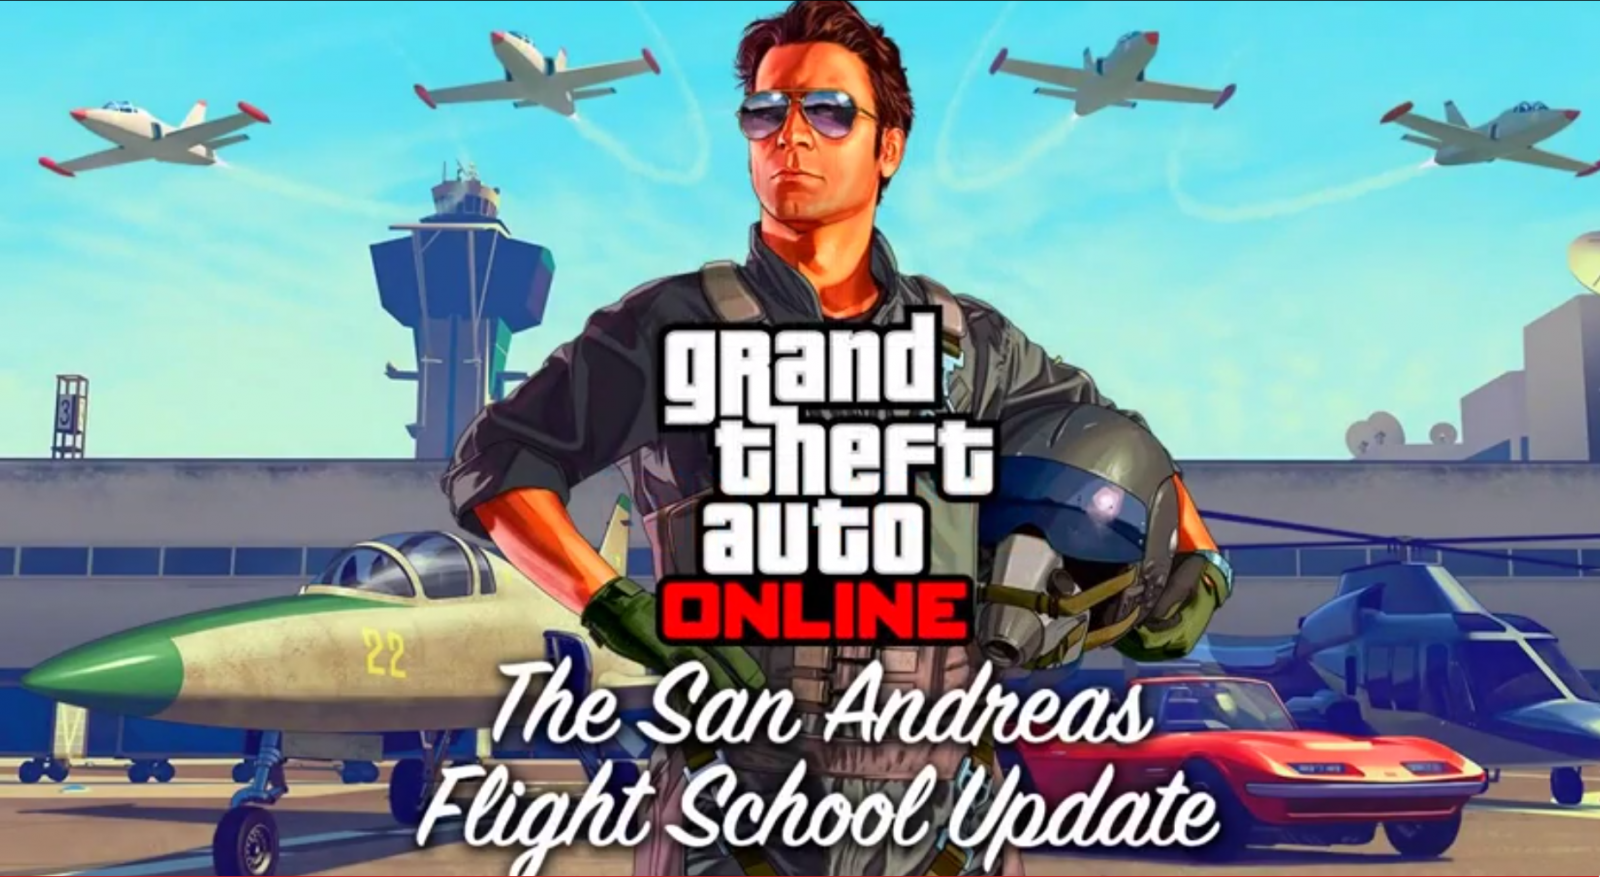 the fastest plane in gta 5 with Gta 5 Online 1 16 Update Best Unlimited Money Glitches Make Millions Easy 1462174 on Gta 5 Cheats Full List furthermore Gta 5 Ps4 And Xbox One Screenshots likewise Gta Online Hints Tips in addition Code 20de 20triche 20avion 20gta 205 20xbox 20360 together with Poll Results Favorite Gta V Vehicles.